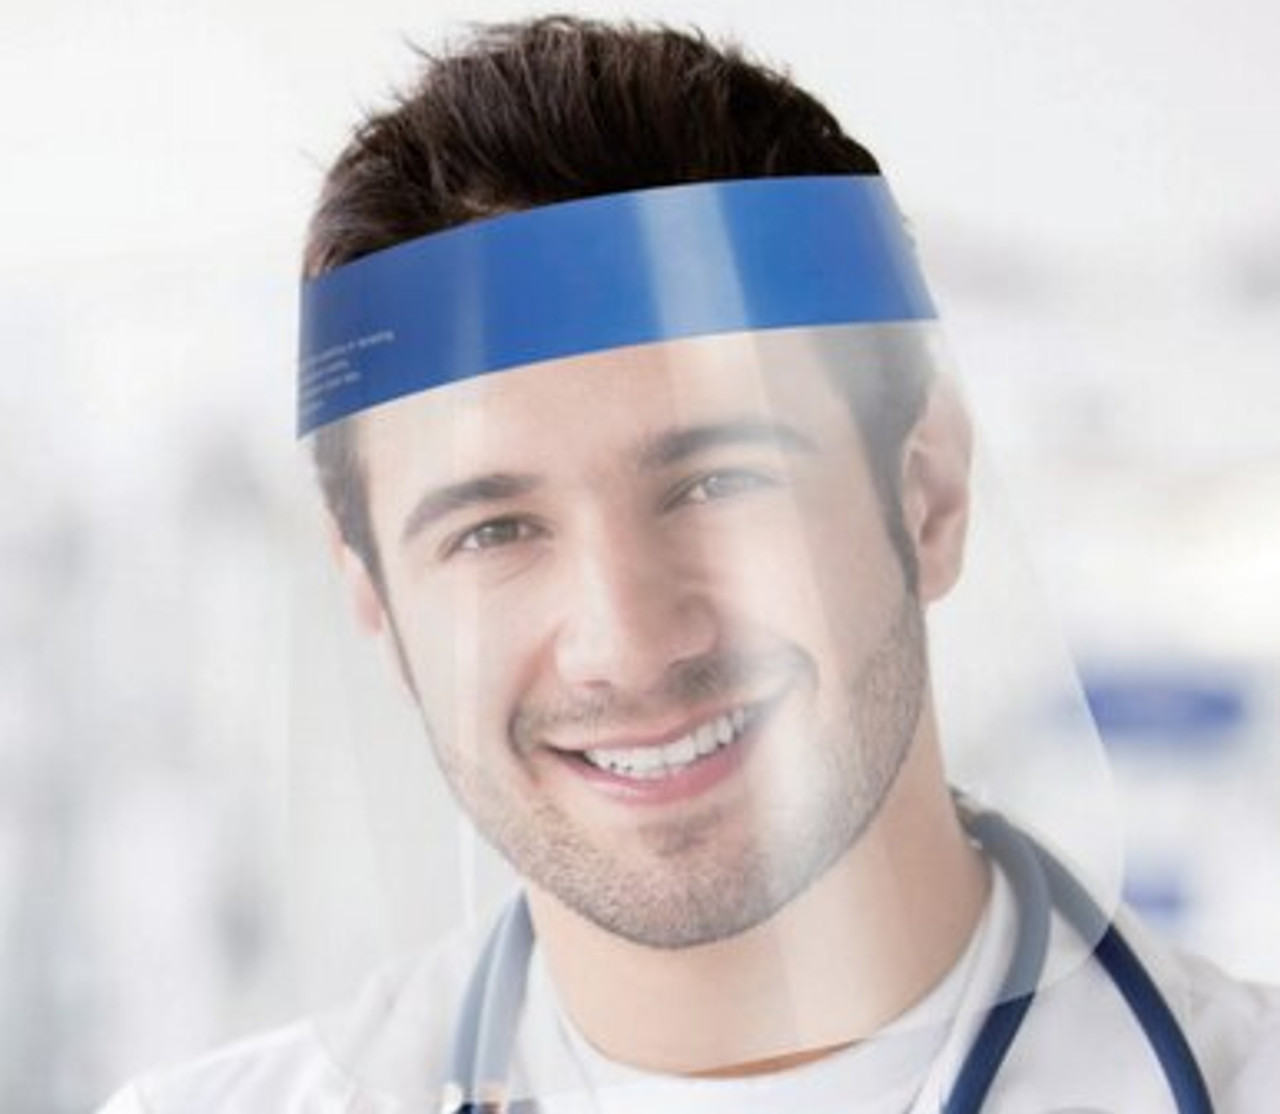 20 Pack FACE SHIELD - INTCO MEDICAL ($3 Each)